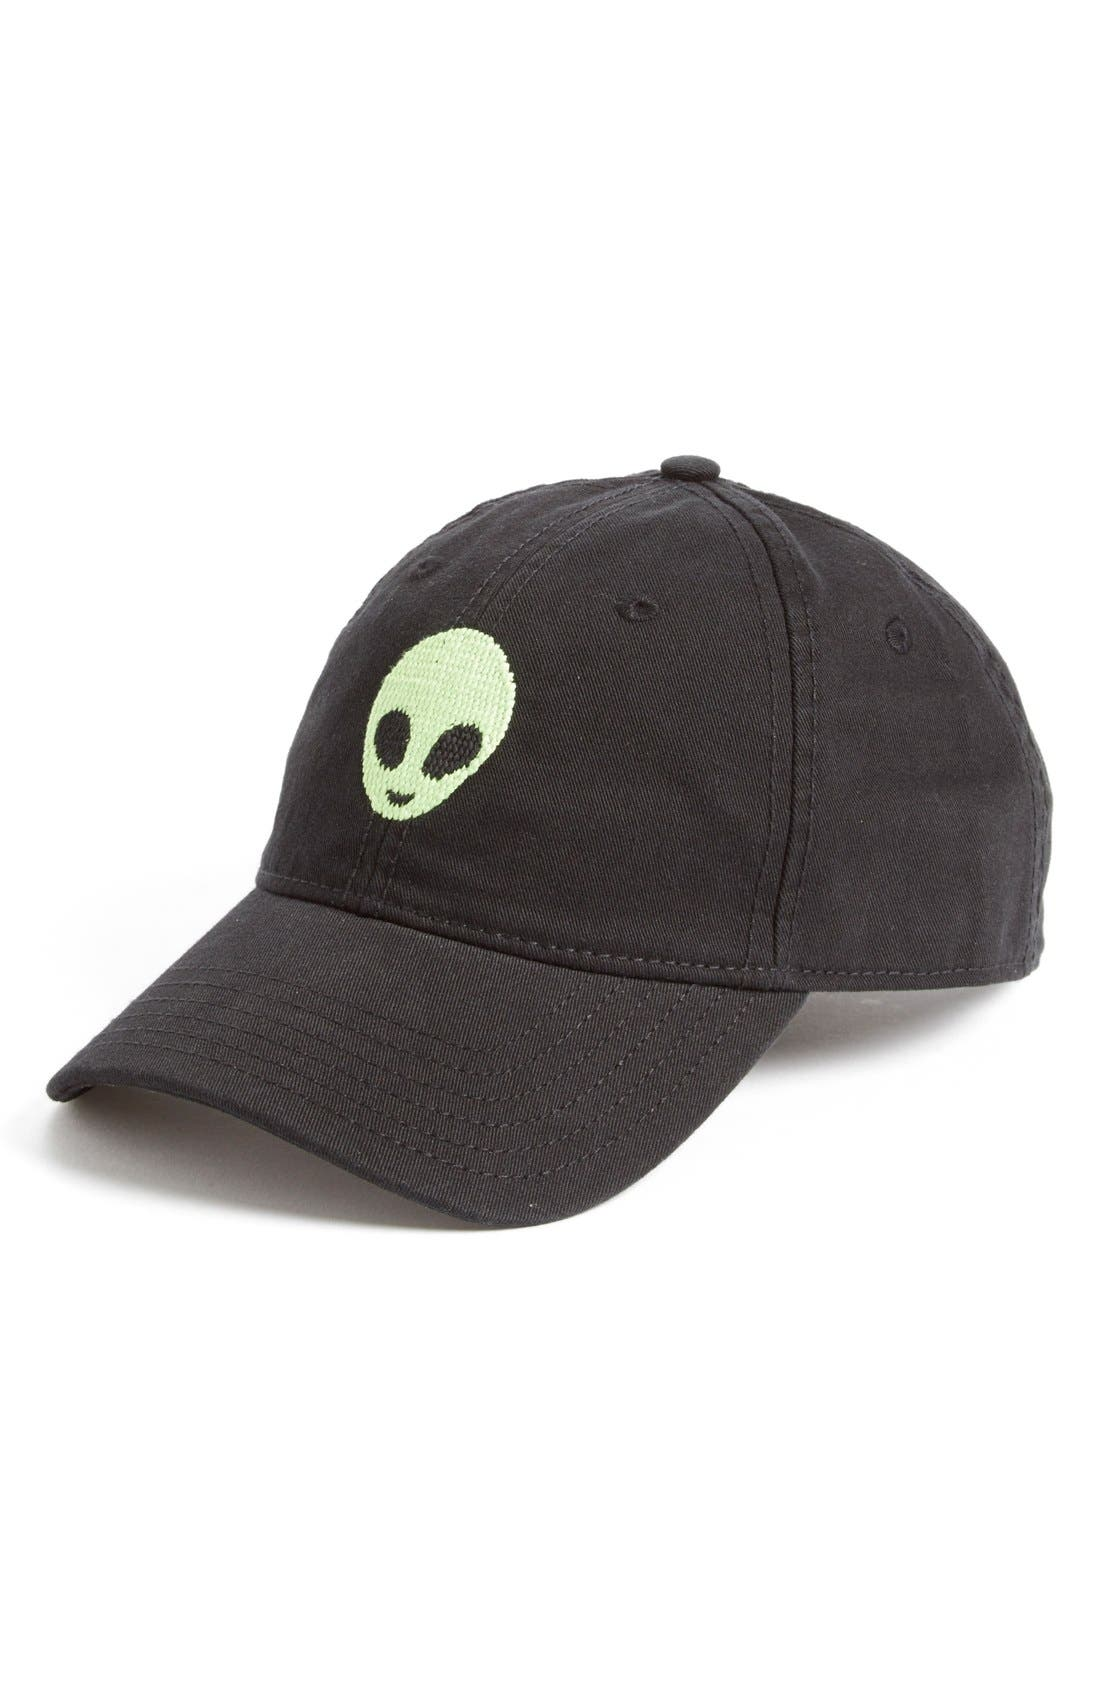 Main Image - Opening Ceremony 'Alien' Cap